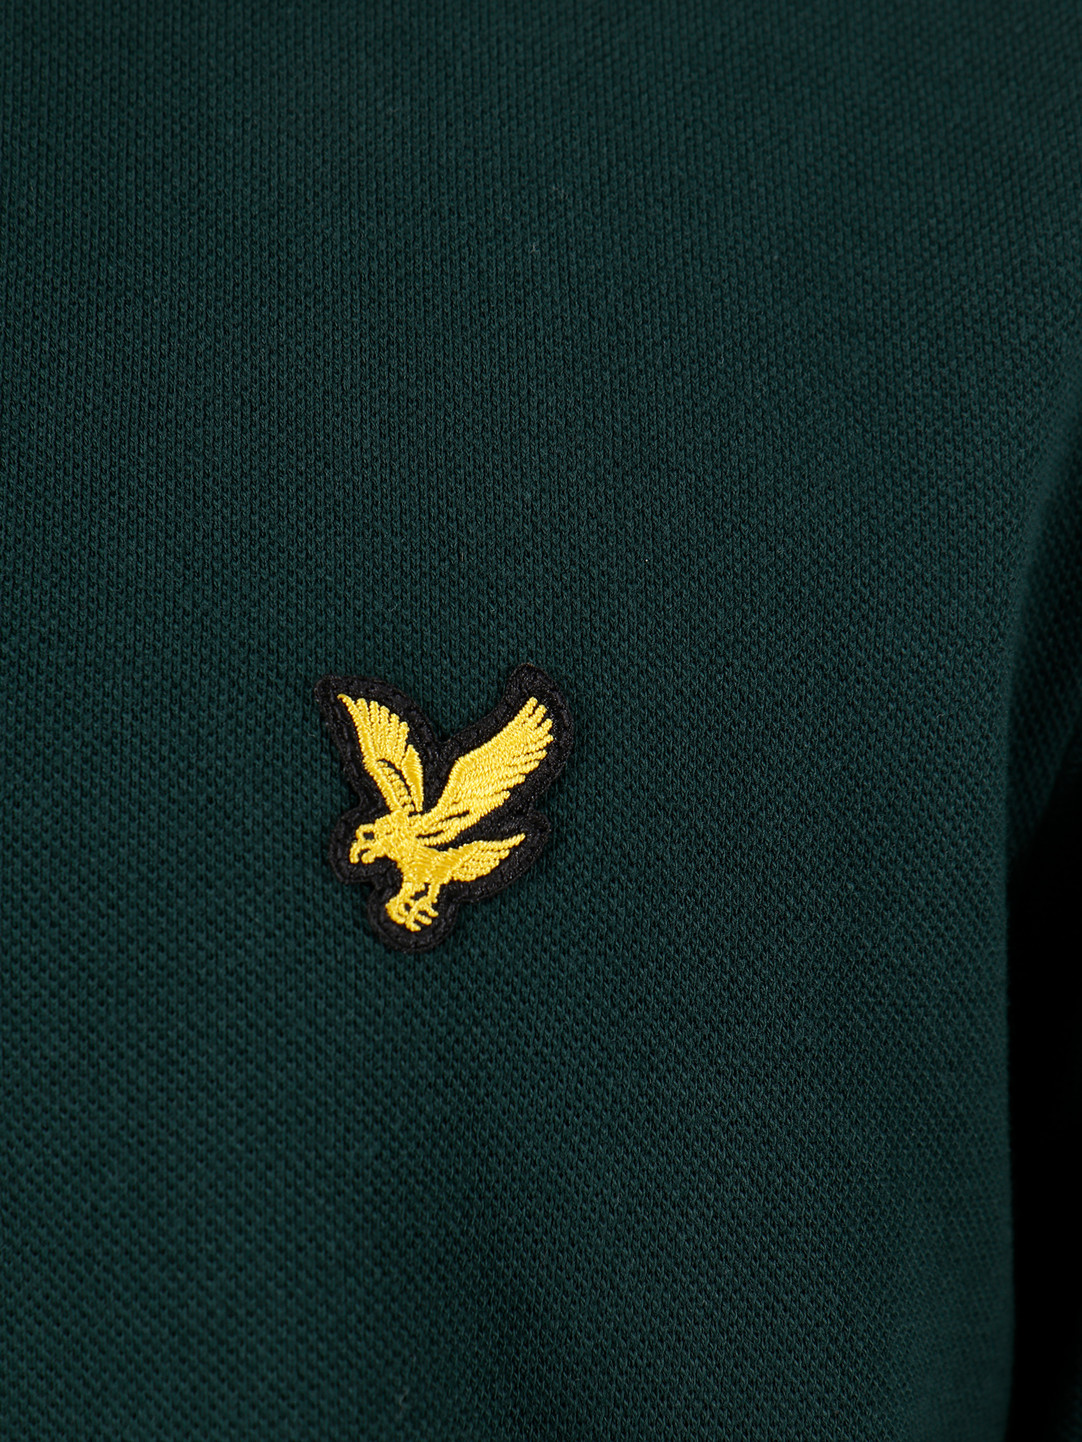 Lyle and Scott Lyle and Scott Polo Shirt Z597 Jade Green SP400VTR